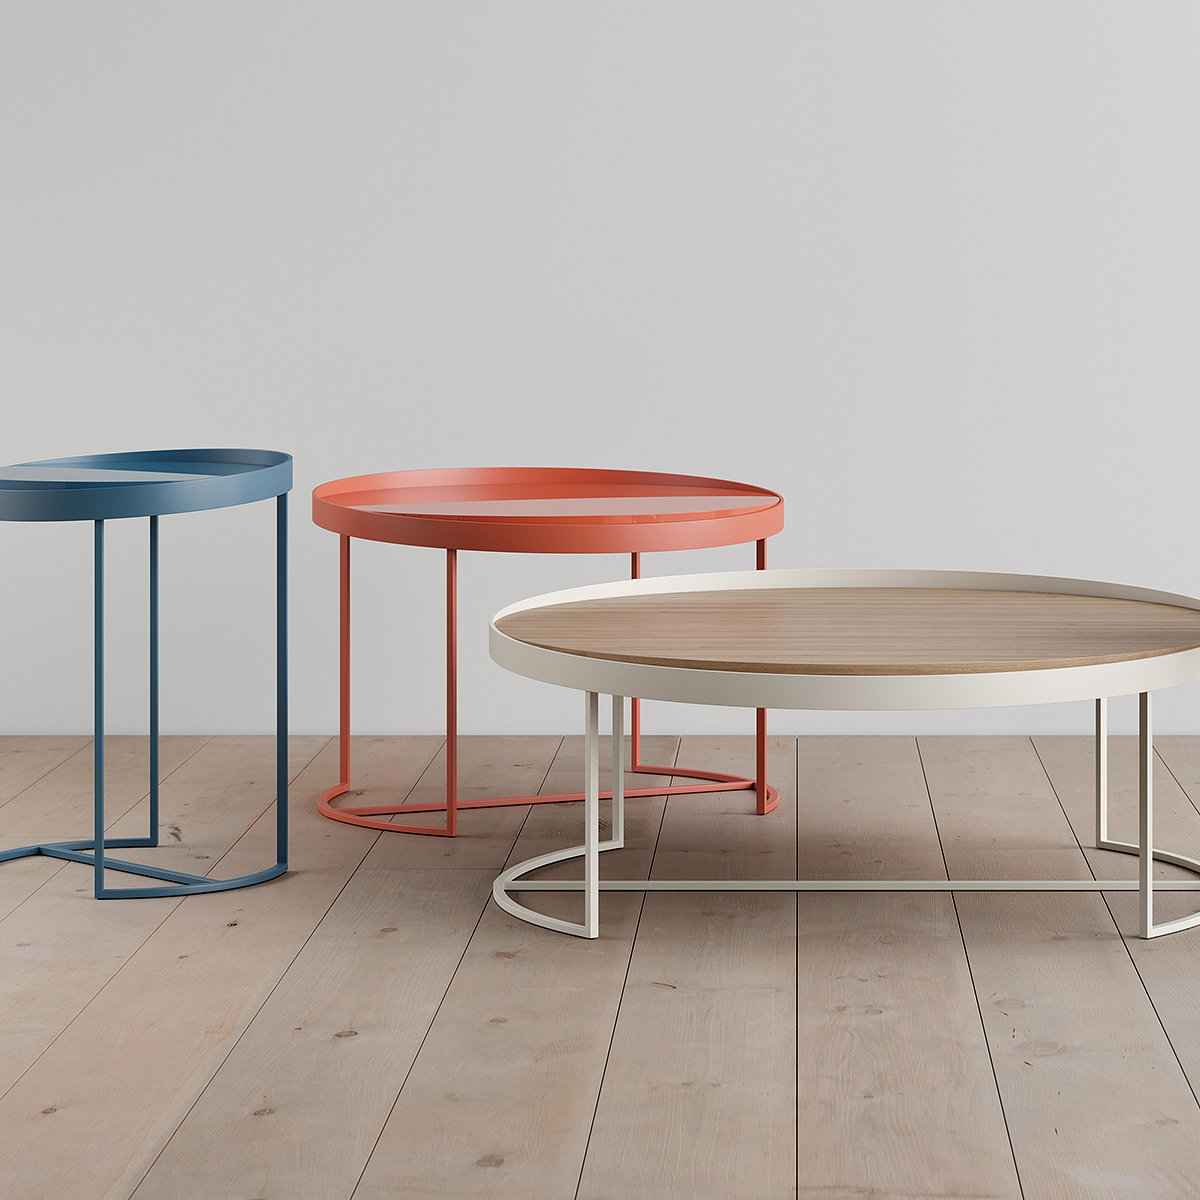 Studio TK Launches Sly Occasional Table Collection